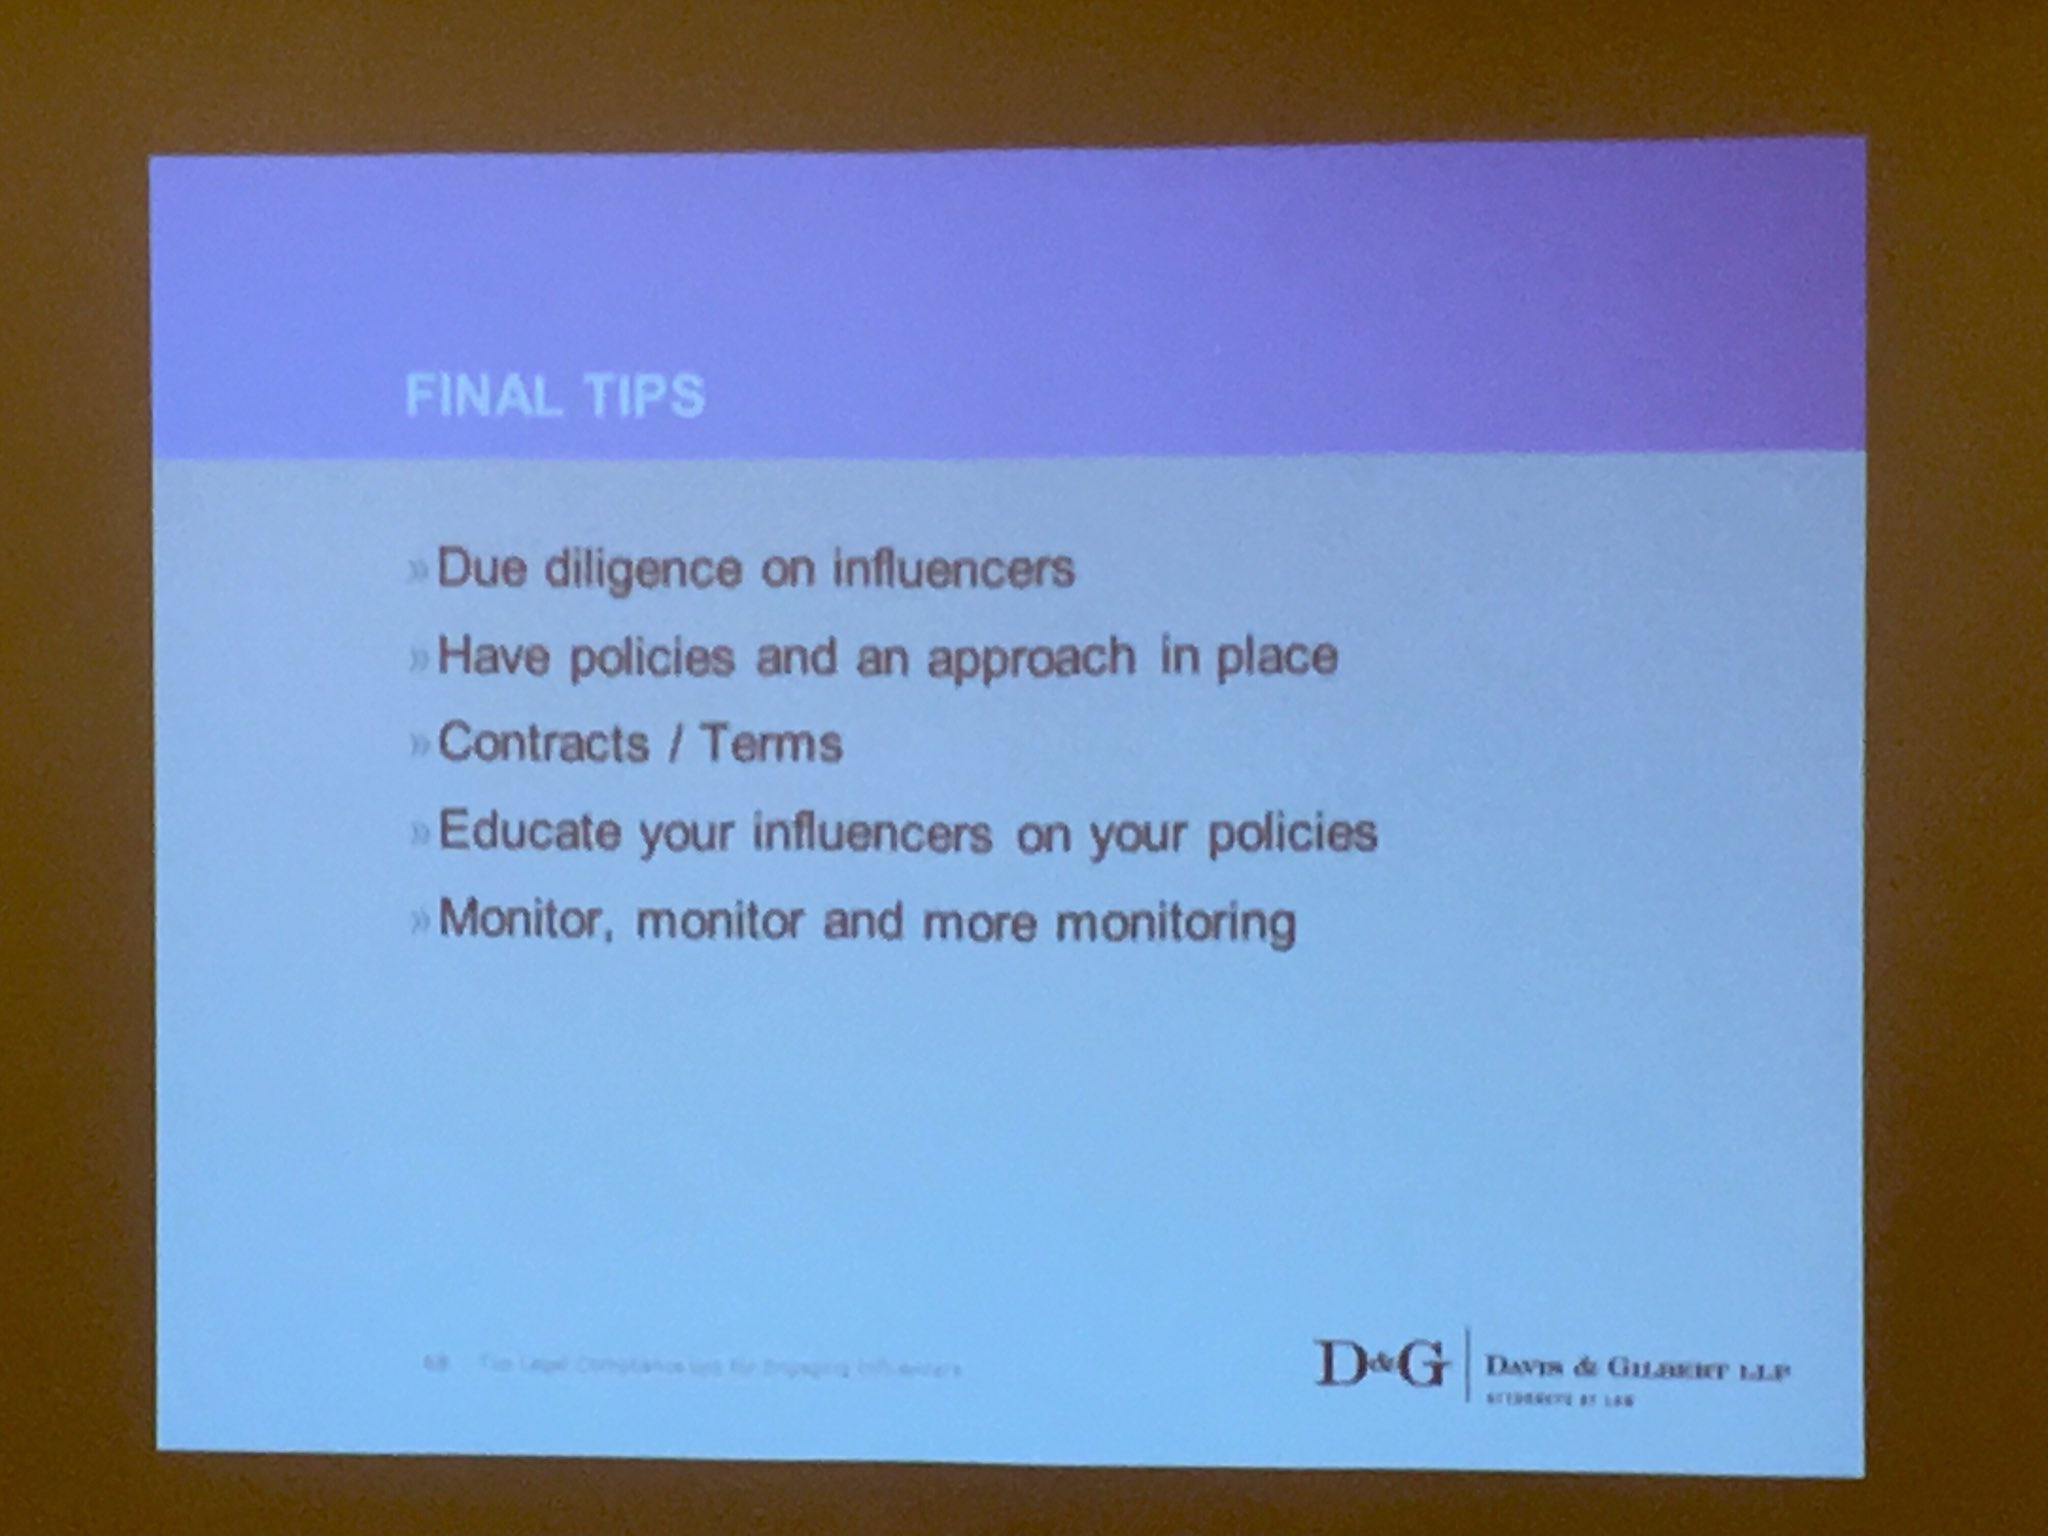 Legal tips for safe #InfluencerMarketing (from @GaryKibel at #InfluencerDays) https://t.co/sMlc5Ta3Md